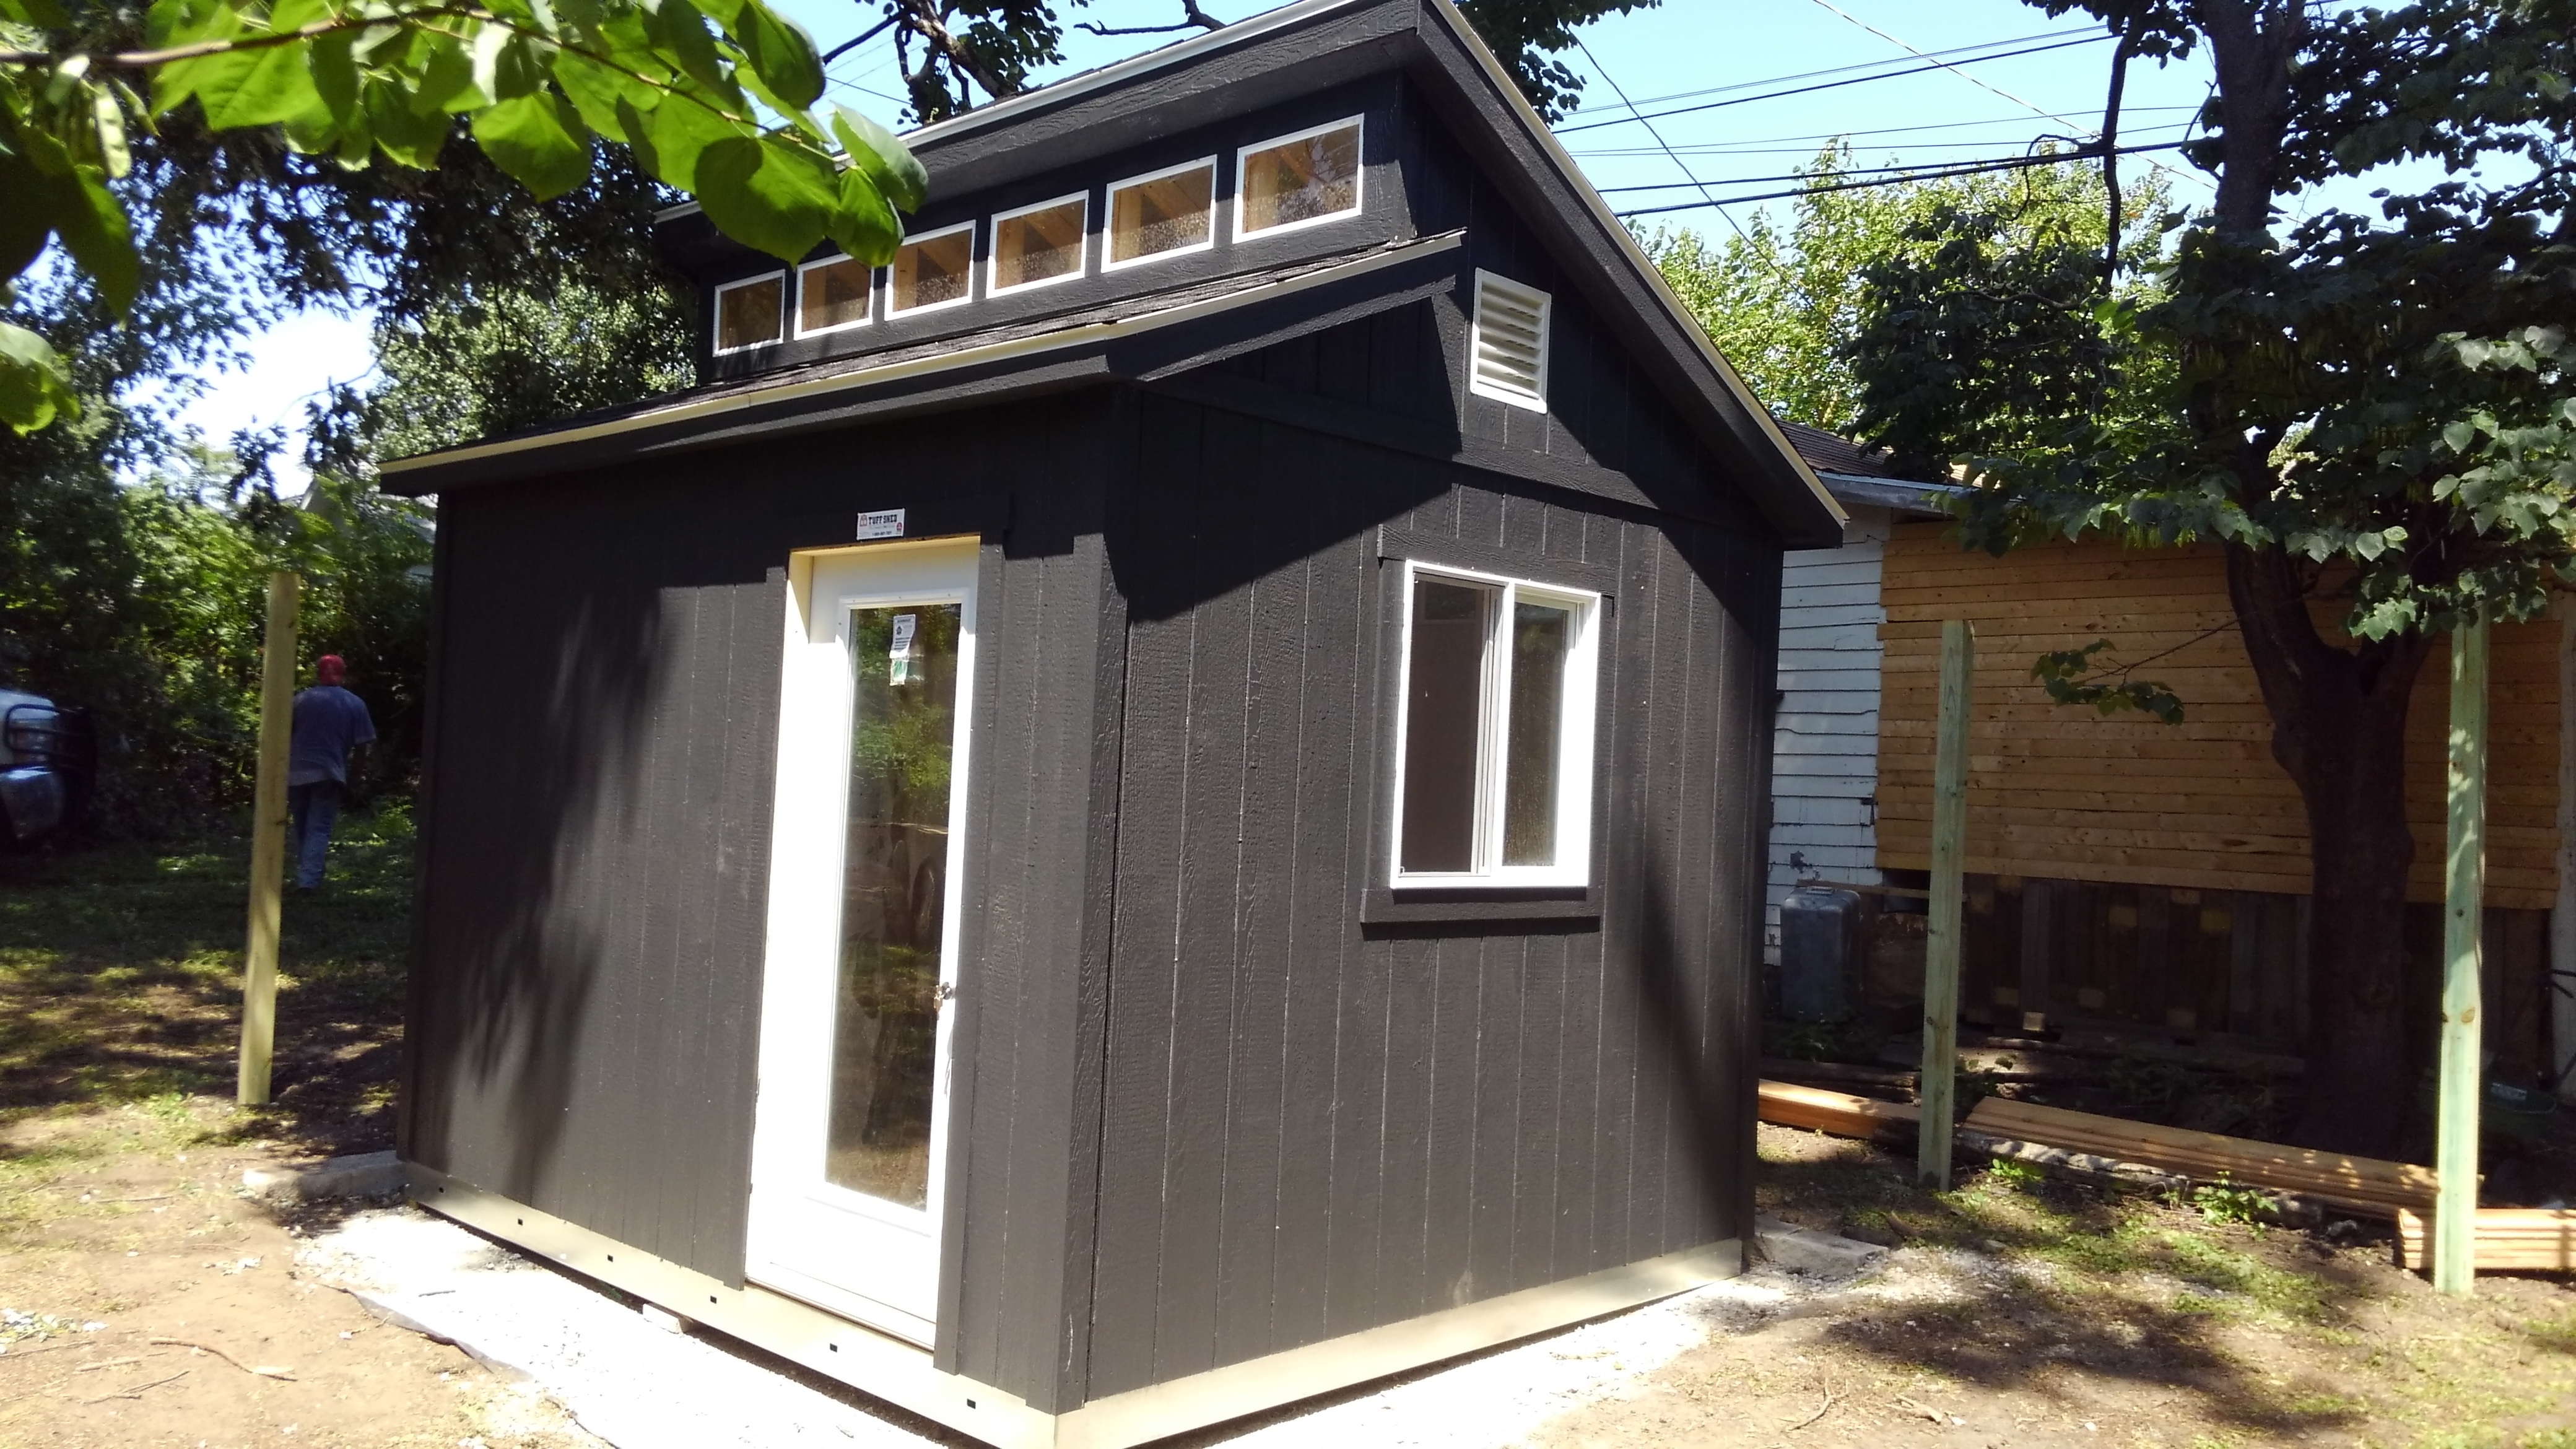 near plans garden design pa with amish life prebuilt wisconsin unlimited more a storage nc buy space county pre house buildings prefab prices for me garage delaware sheds get assembled shed